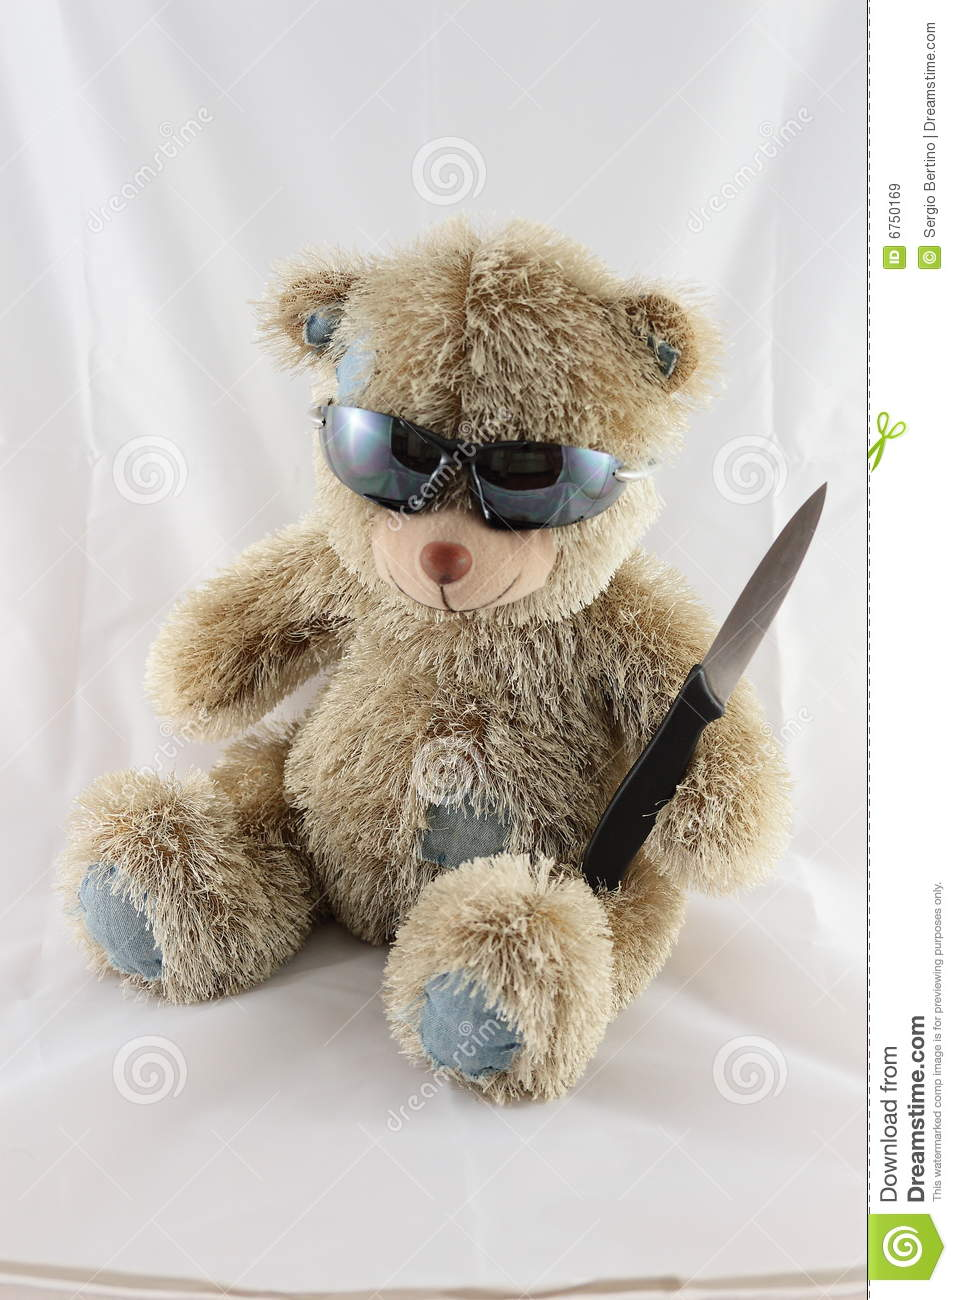 scary teddy bear with a knife royalty free stock images